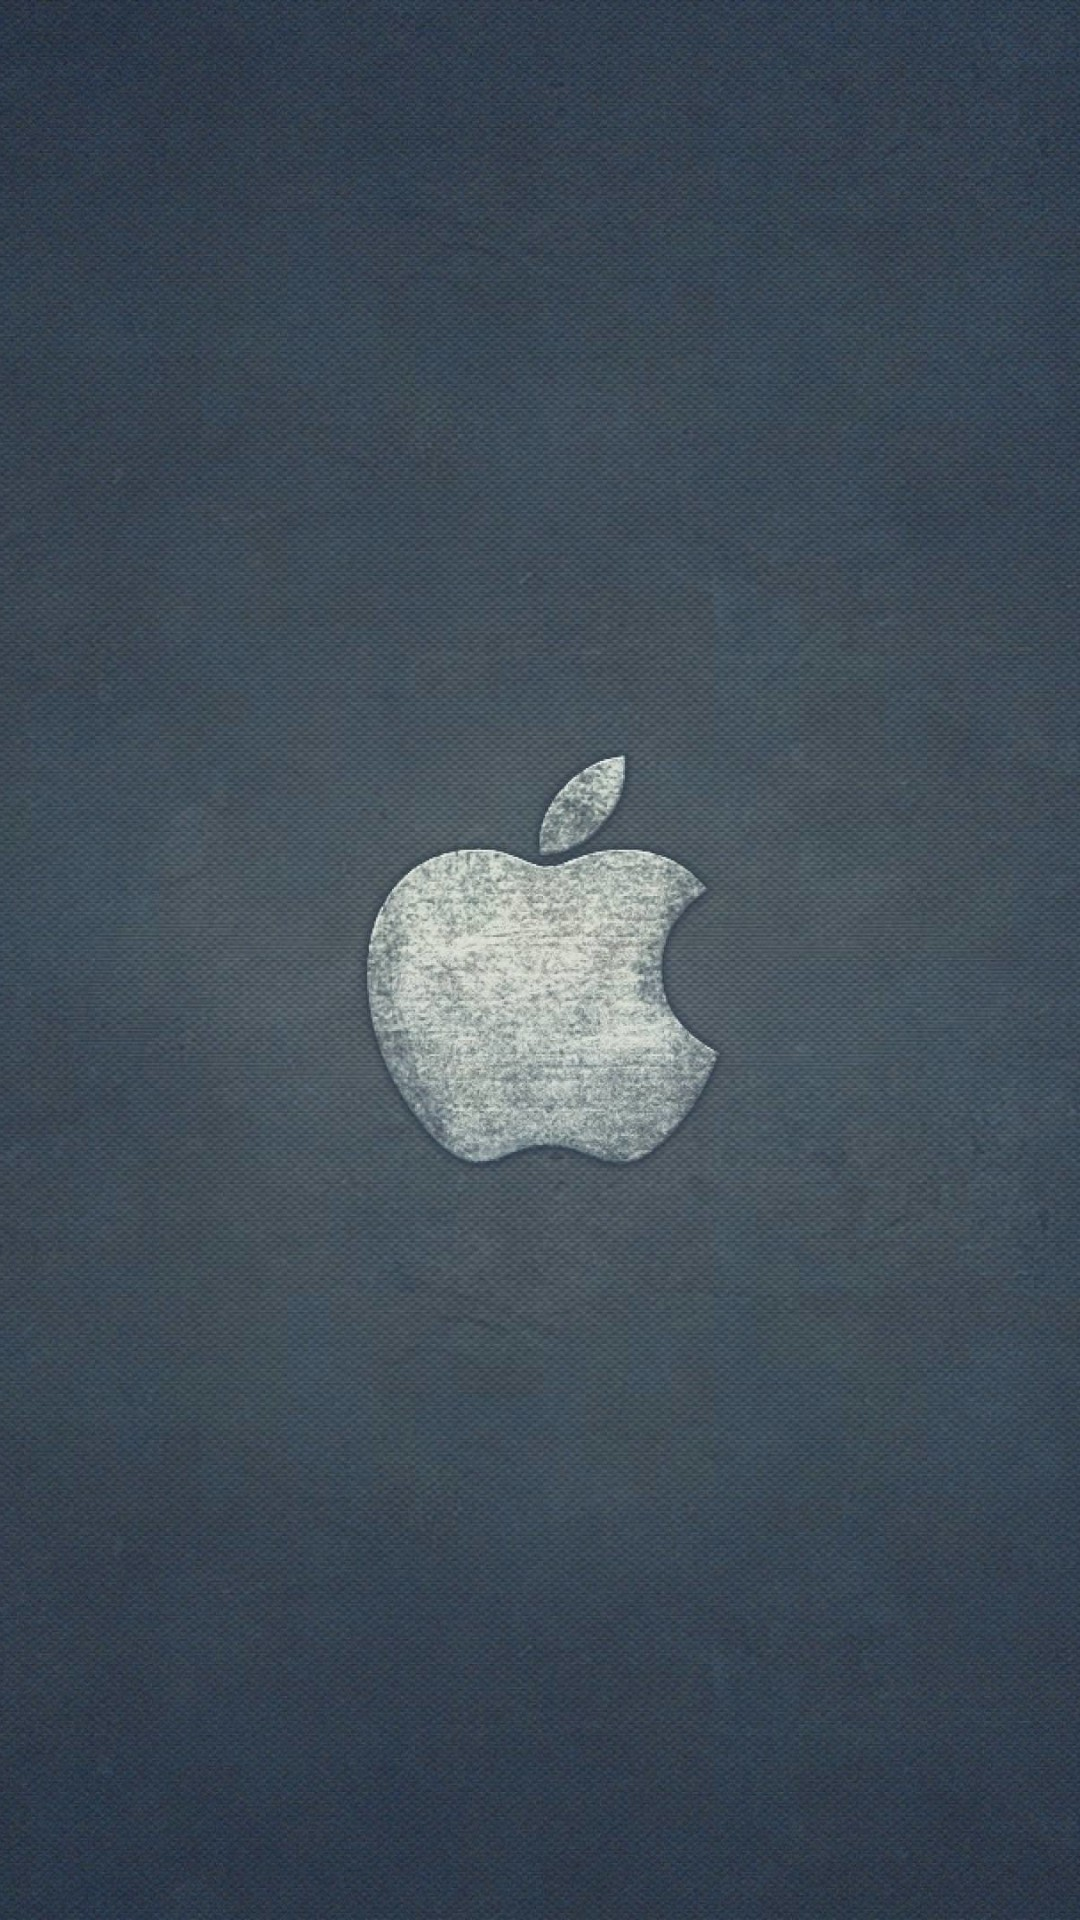 Grunge Apple Logo Wallpaper for SONY Xperia Z3